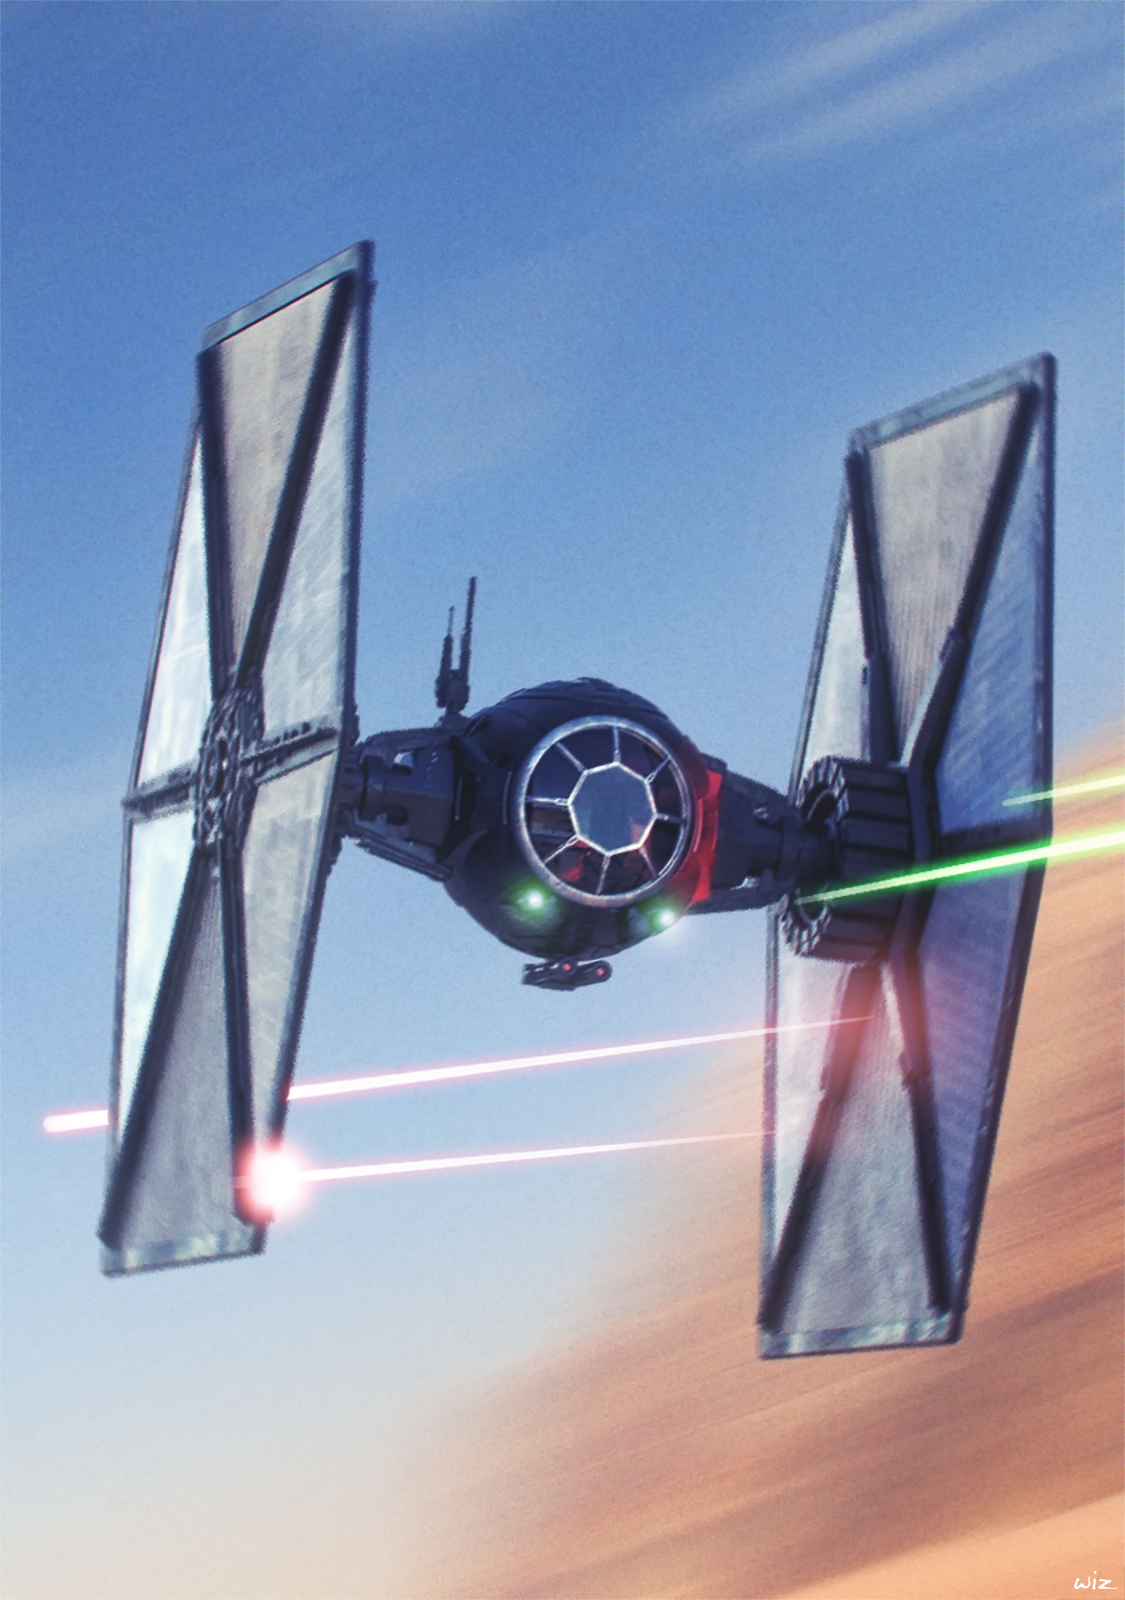 Starwars First Order Special Forces Tie Fighter Dogfight Star Wars Ships Star Wars Pictures Star Wars Wallpaper